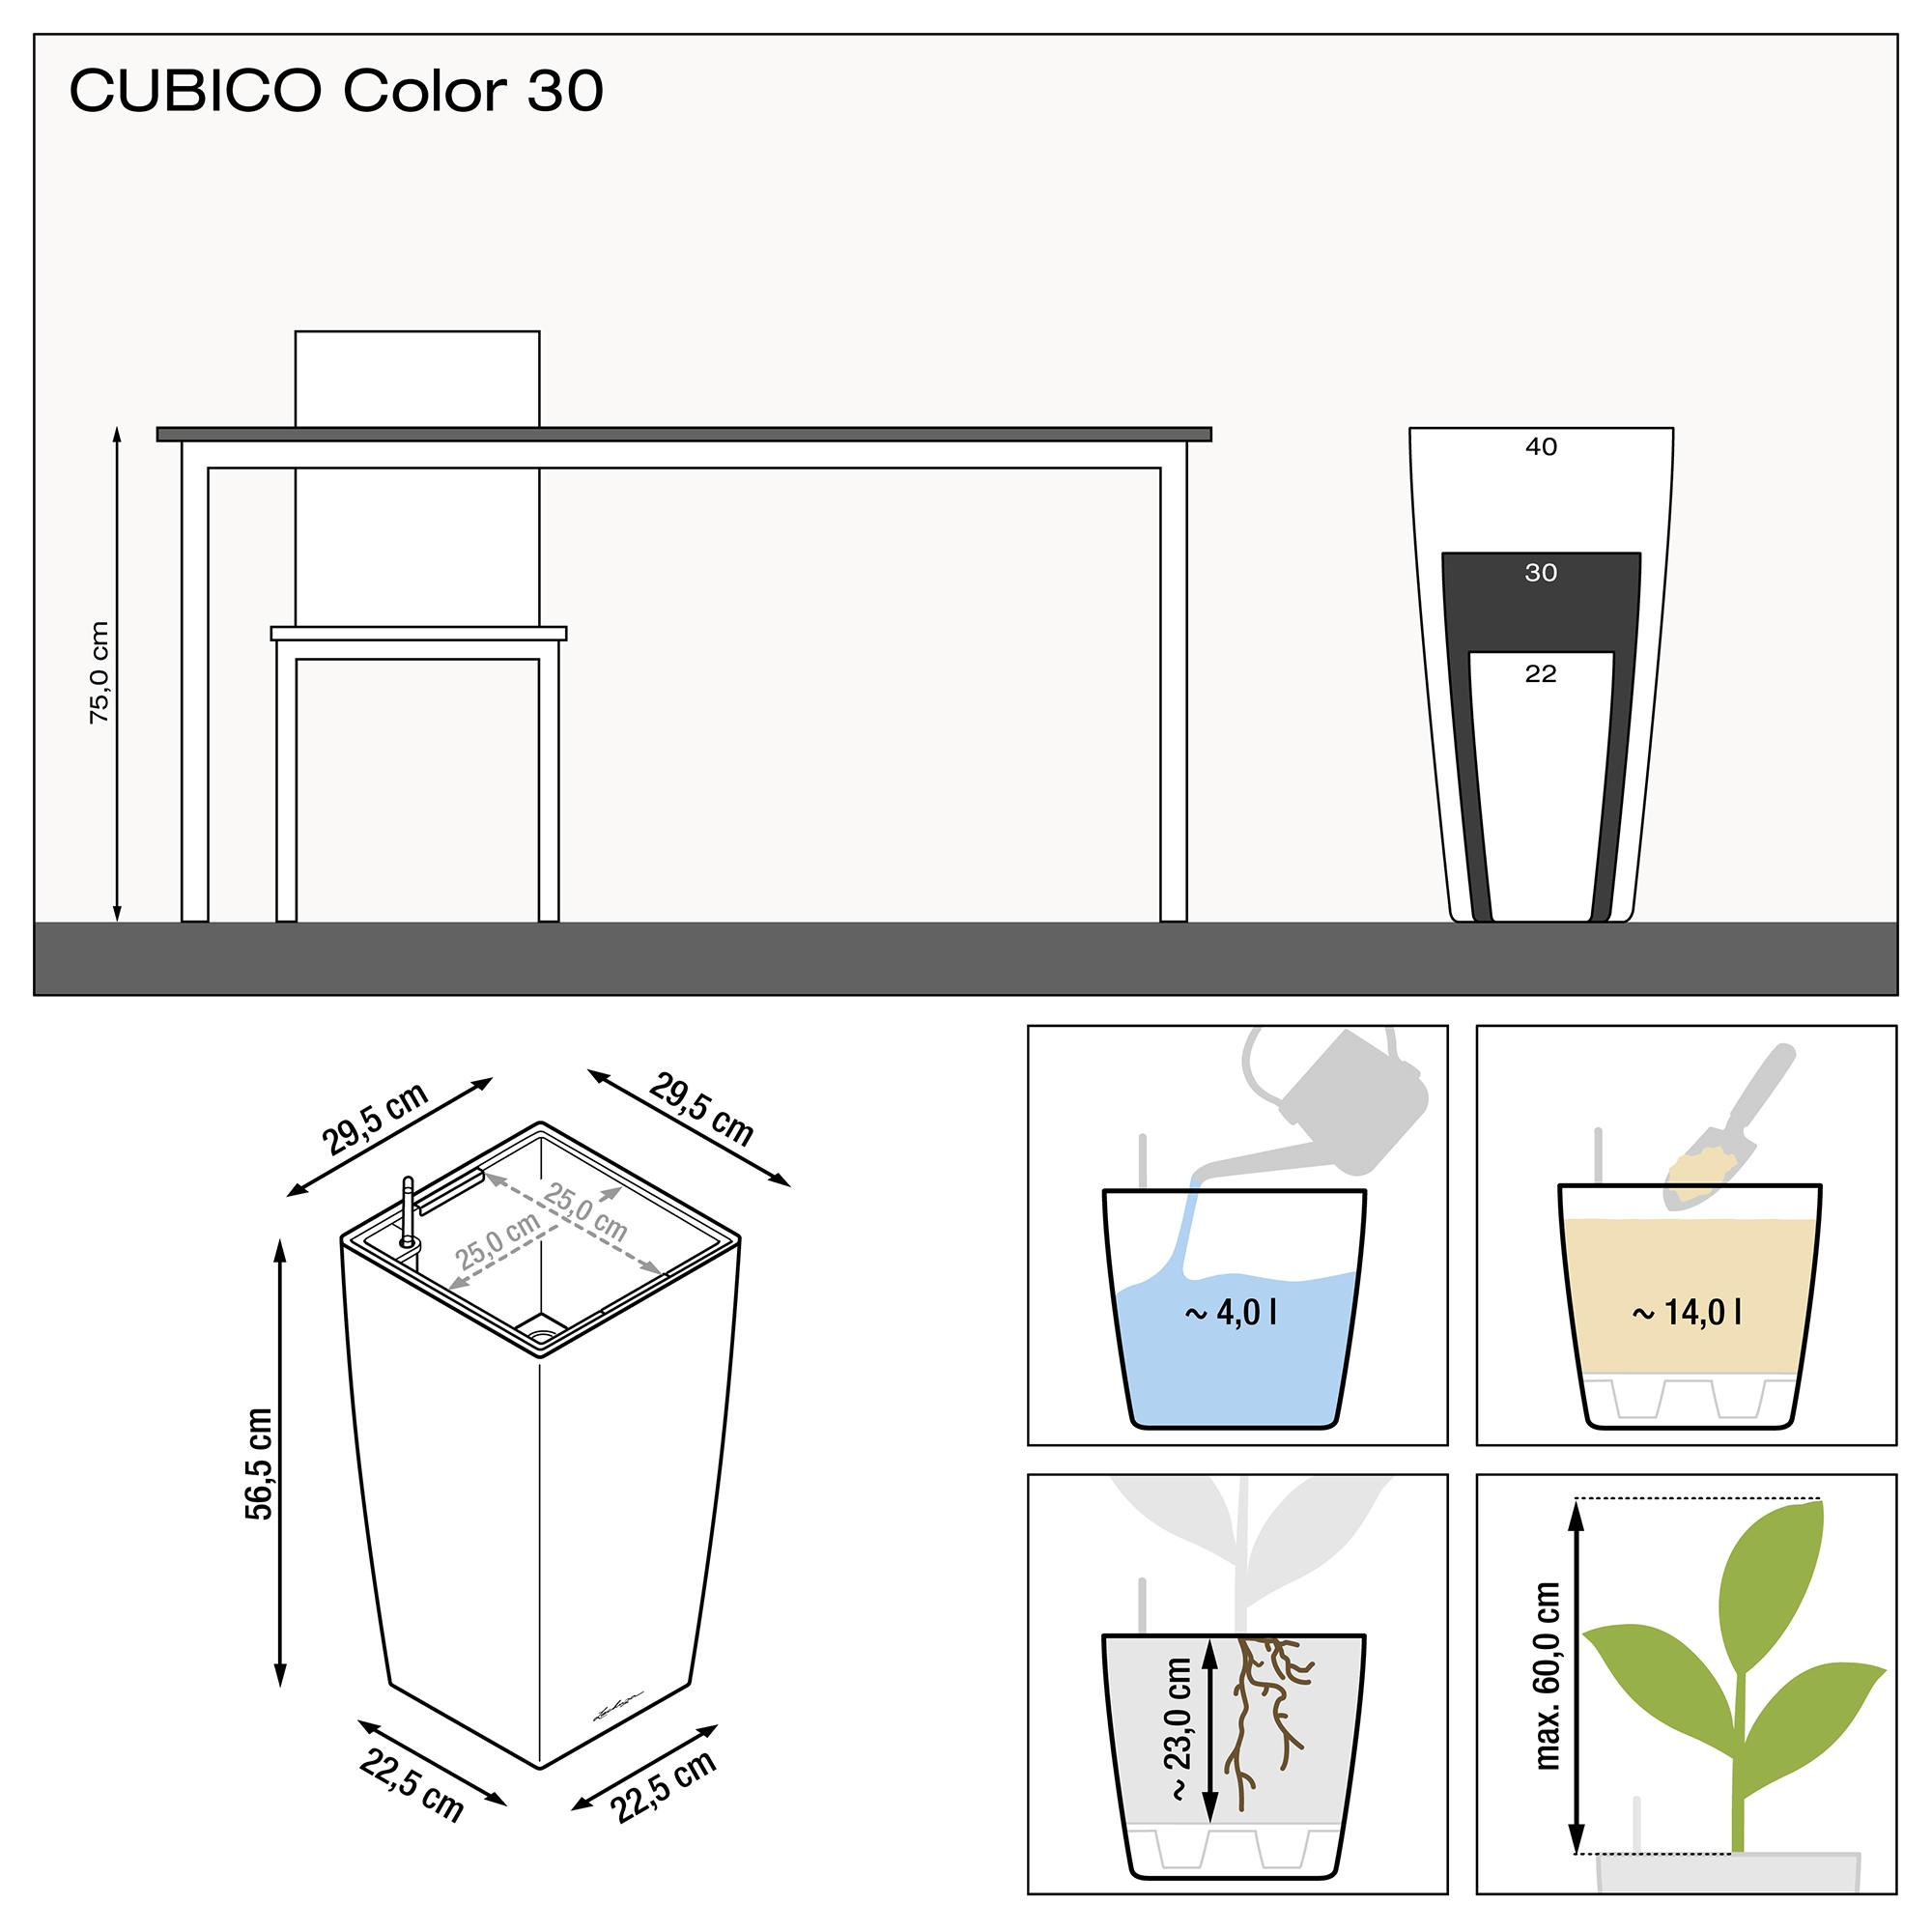 le_cubico-color30_product_addi_nz